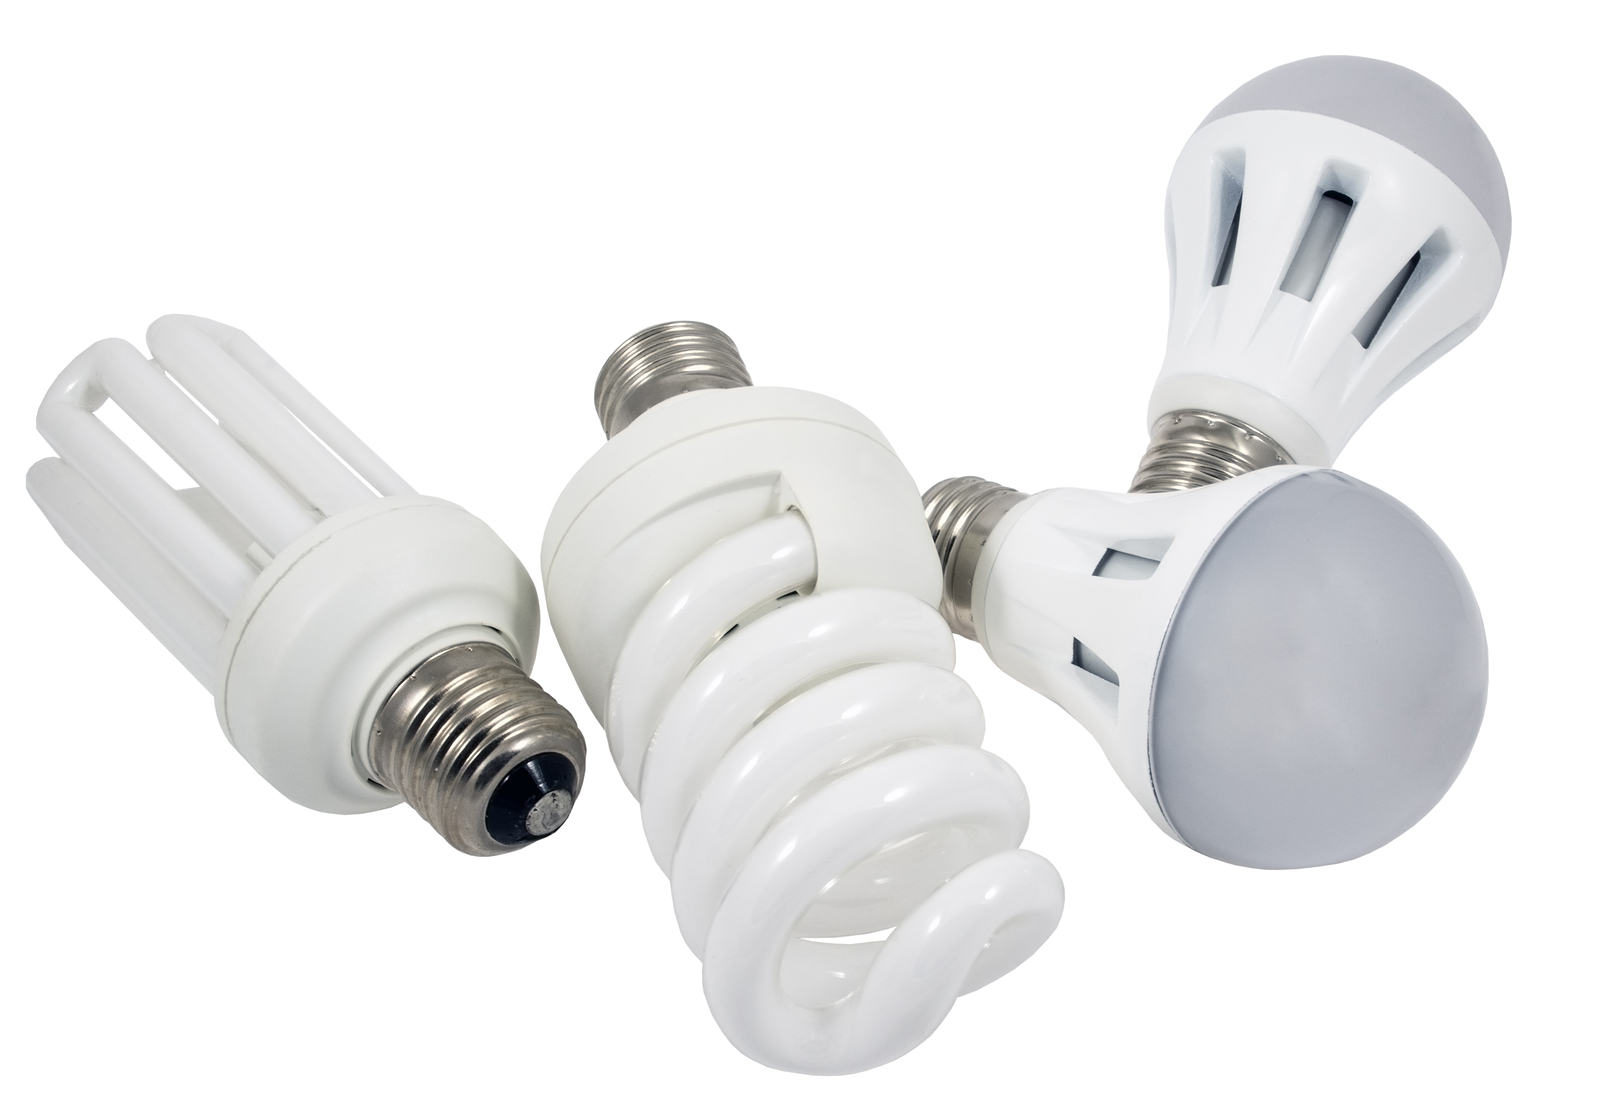 CFL light bulbs